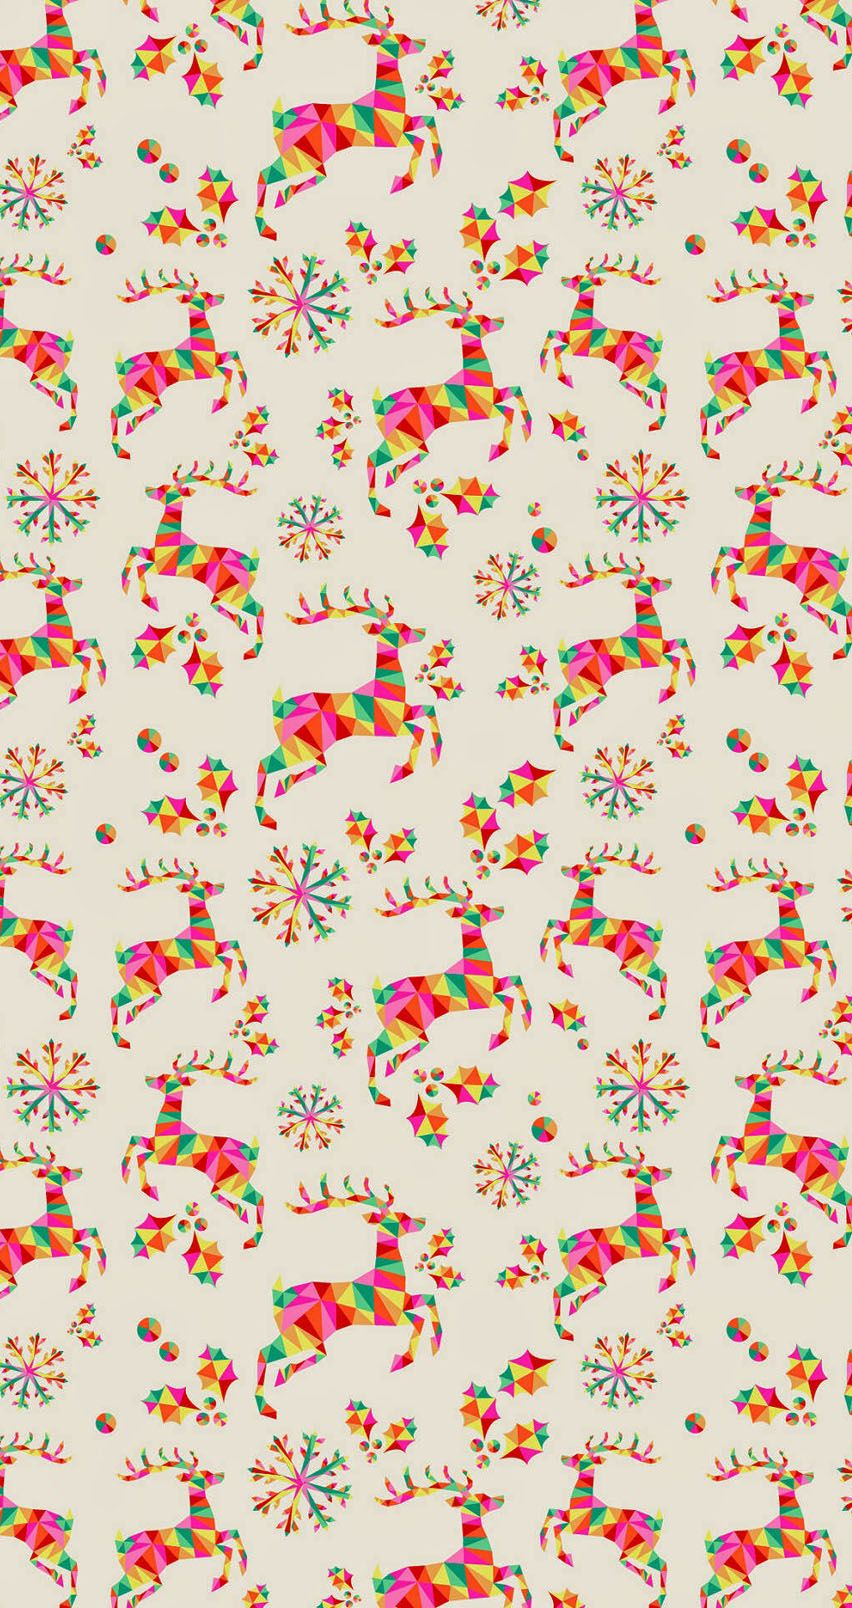 Colorful geometric reindeer pattern tap image for more